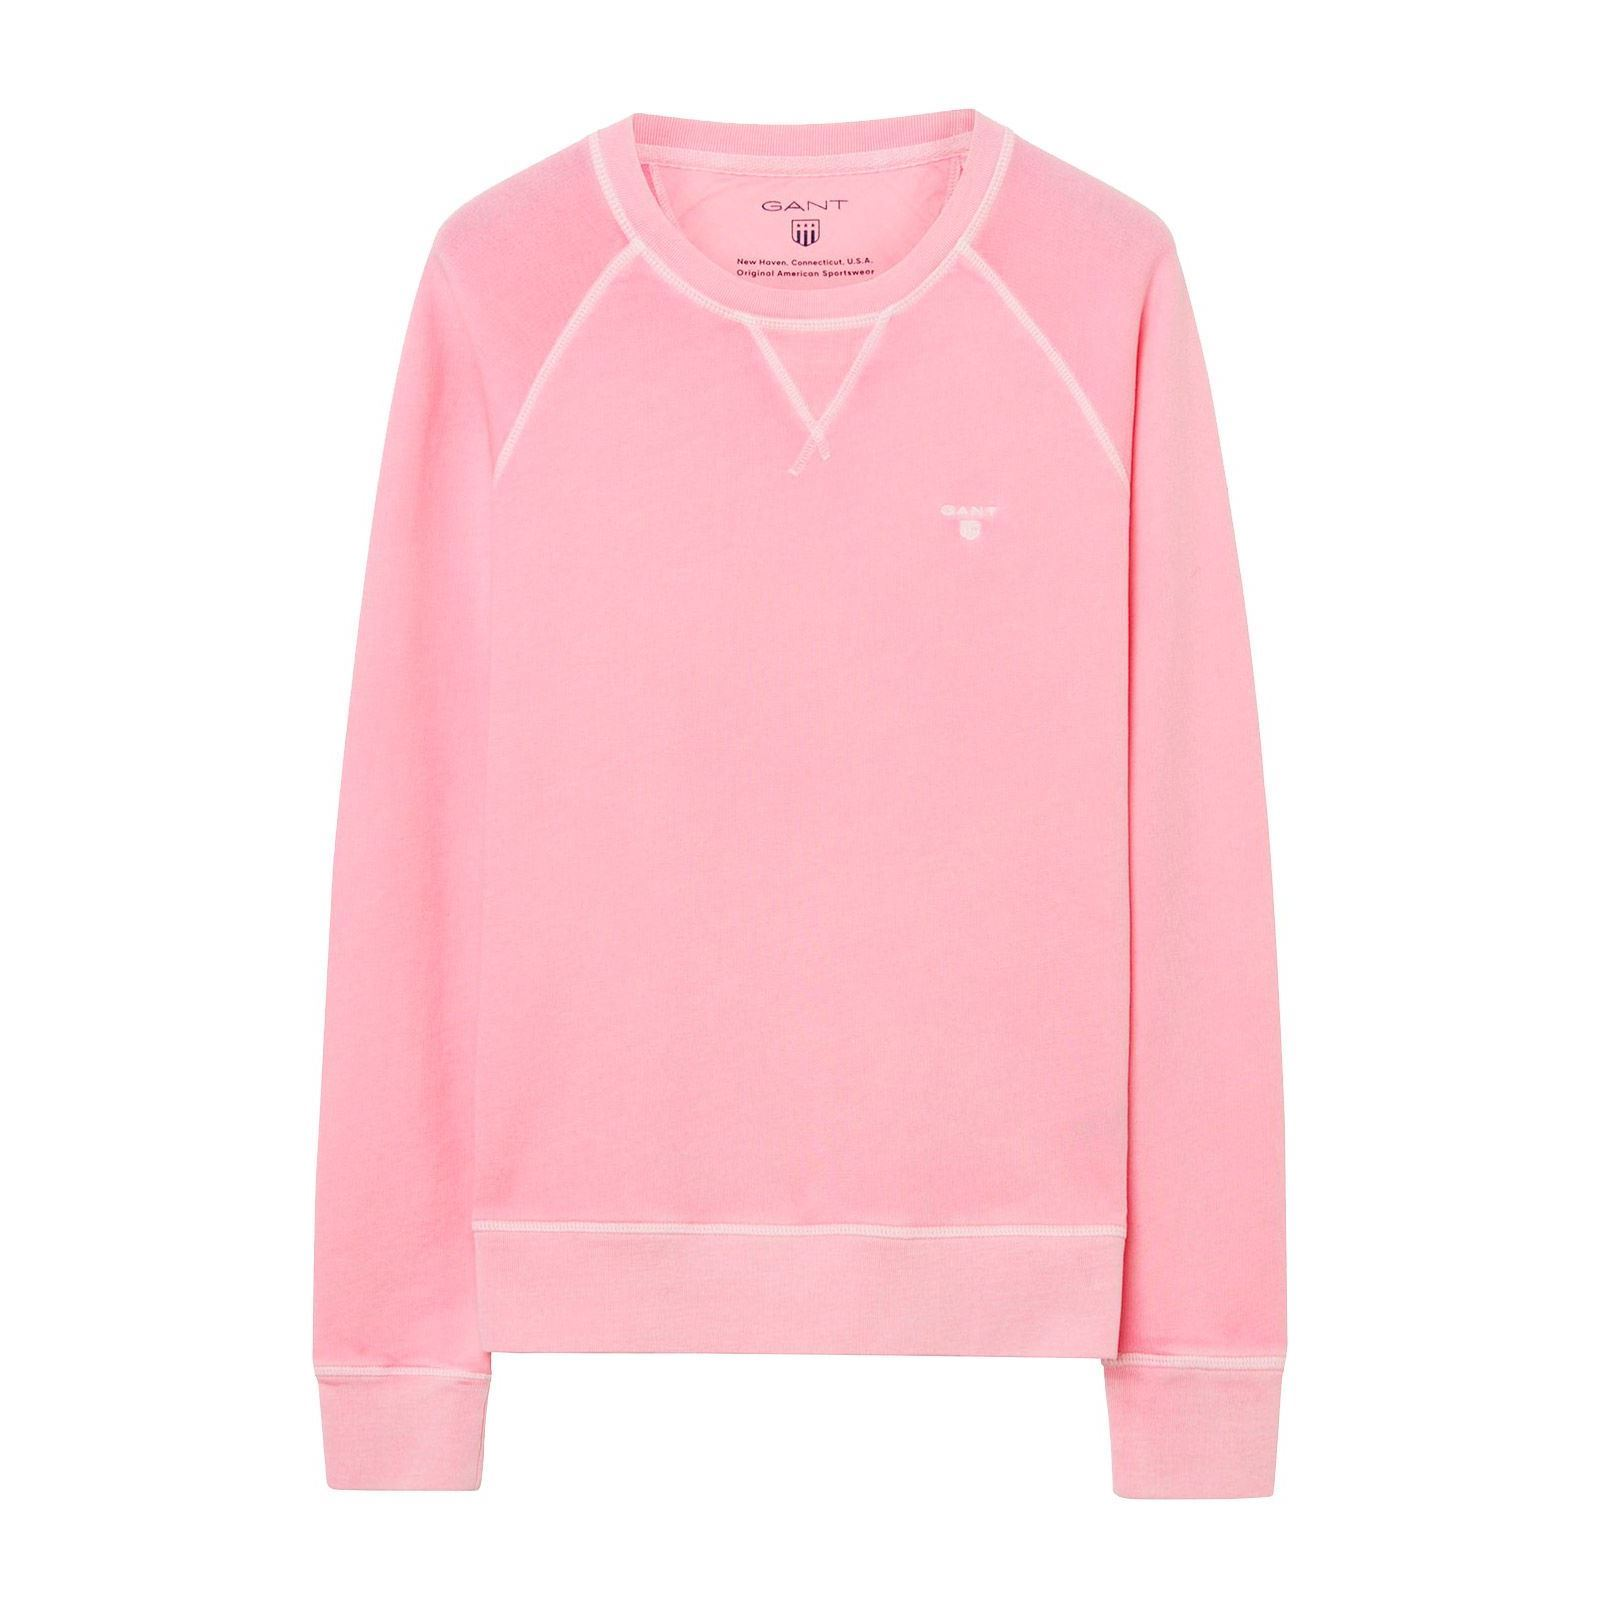 1901401200637Sweat Gant V shirt Rose Femme GqSMzVUp